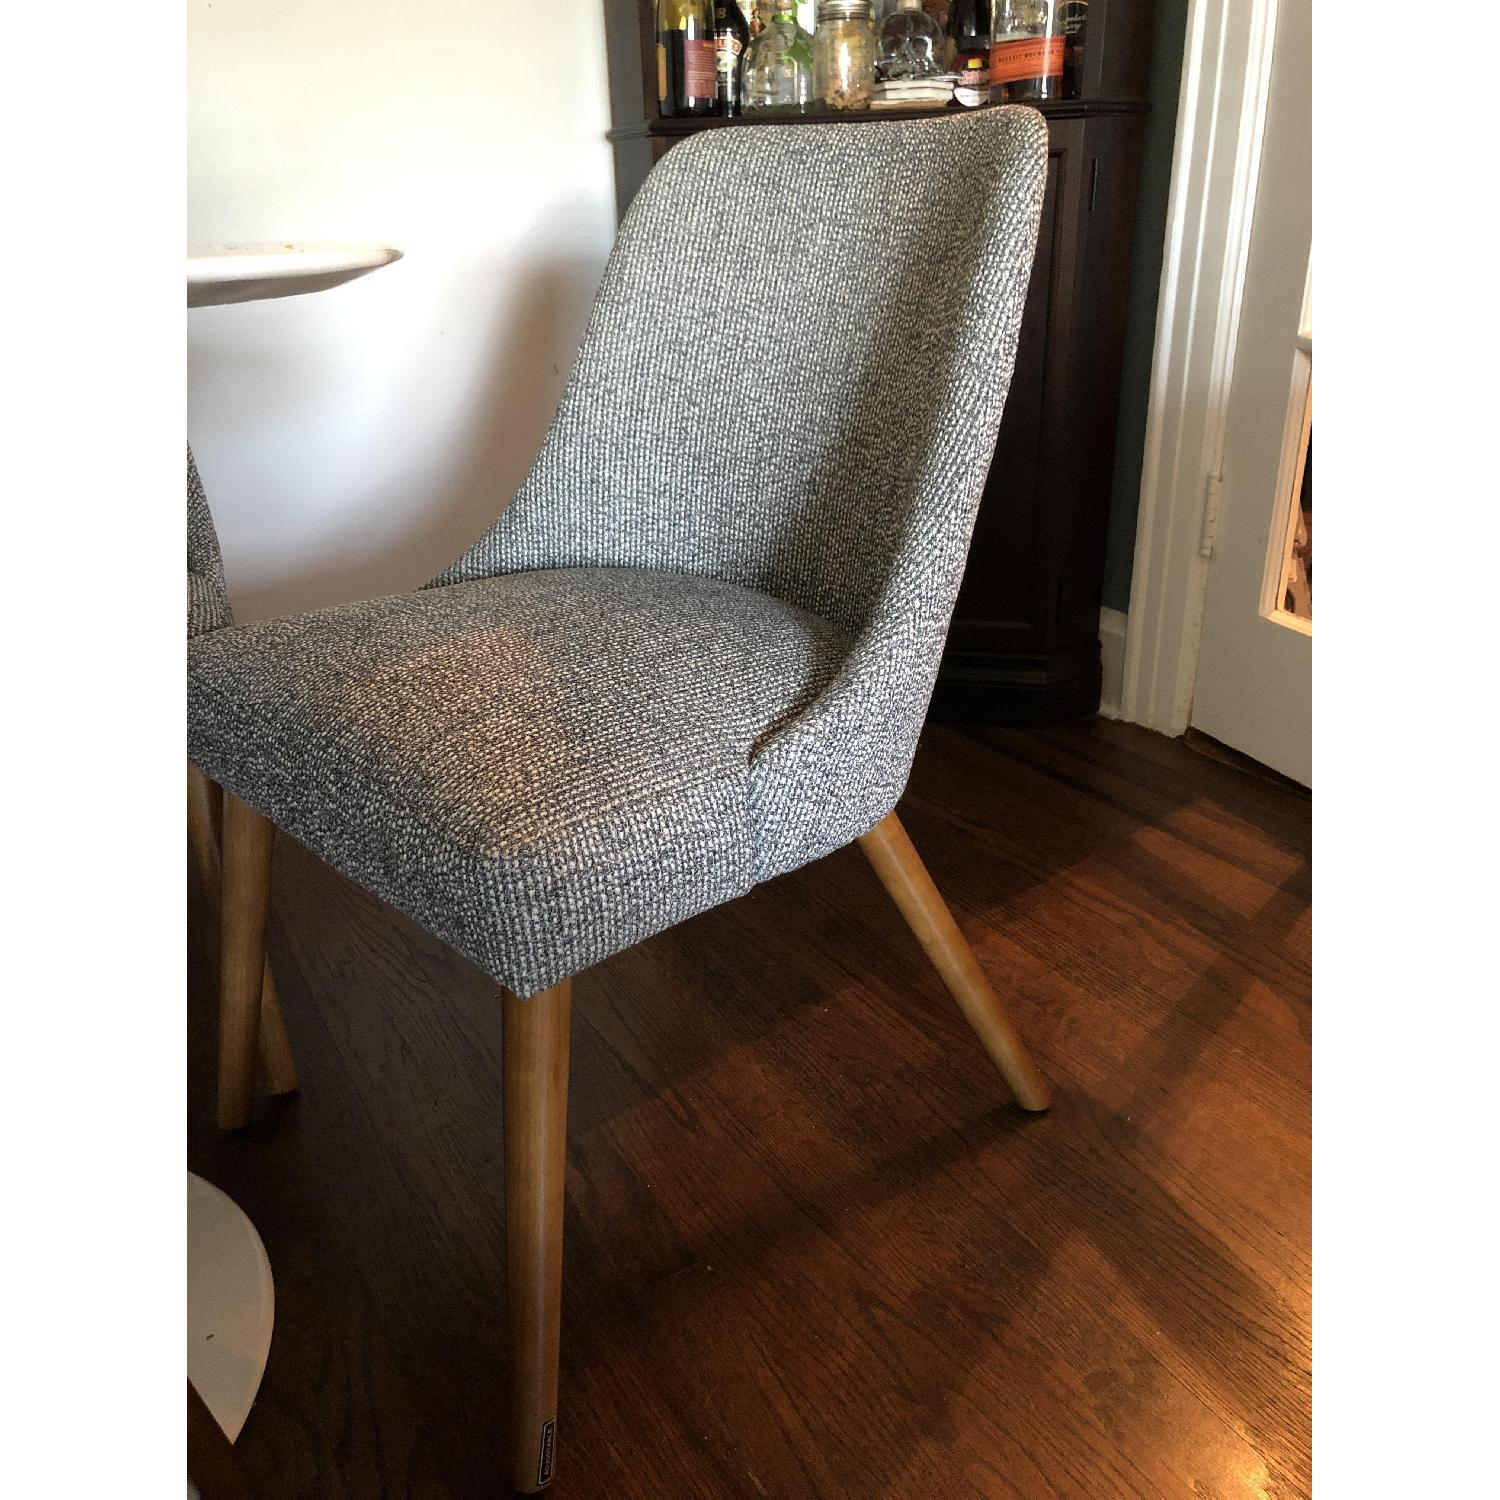 Target Project 62 Dining Chairs - image-6